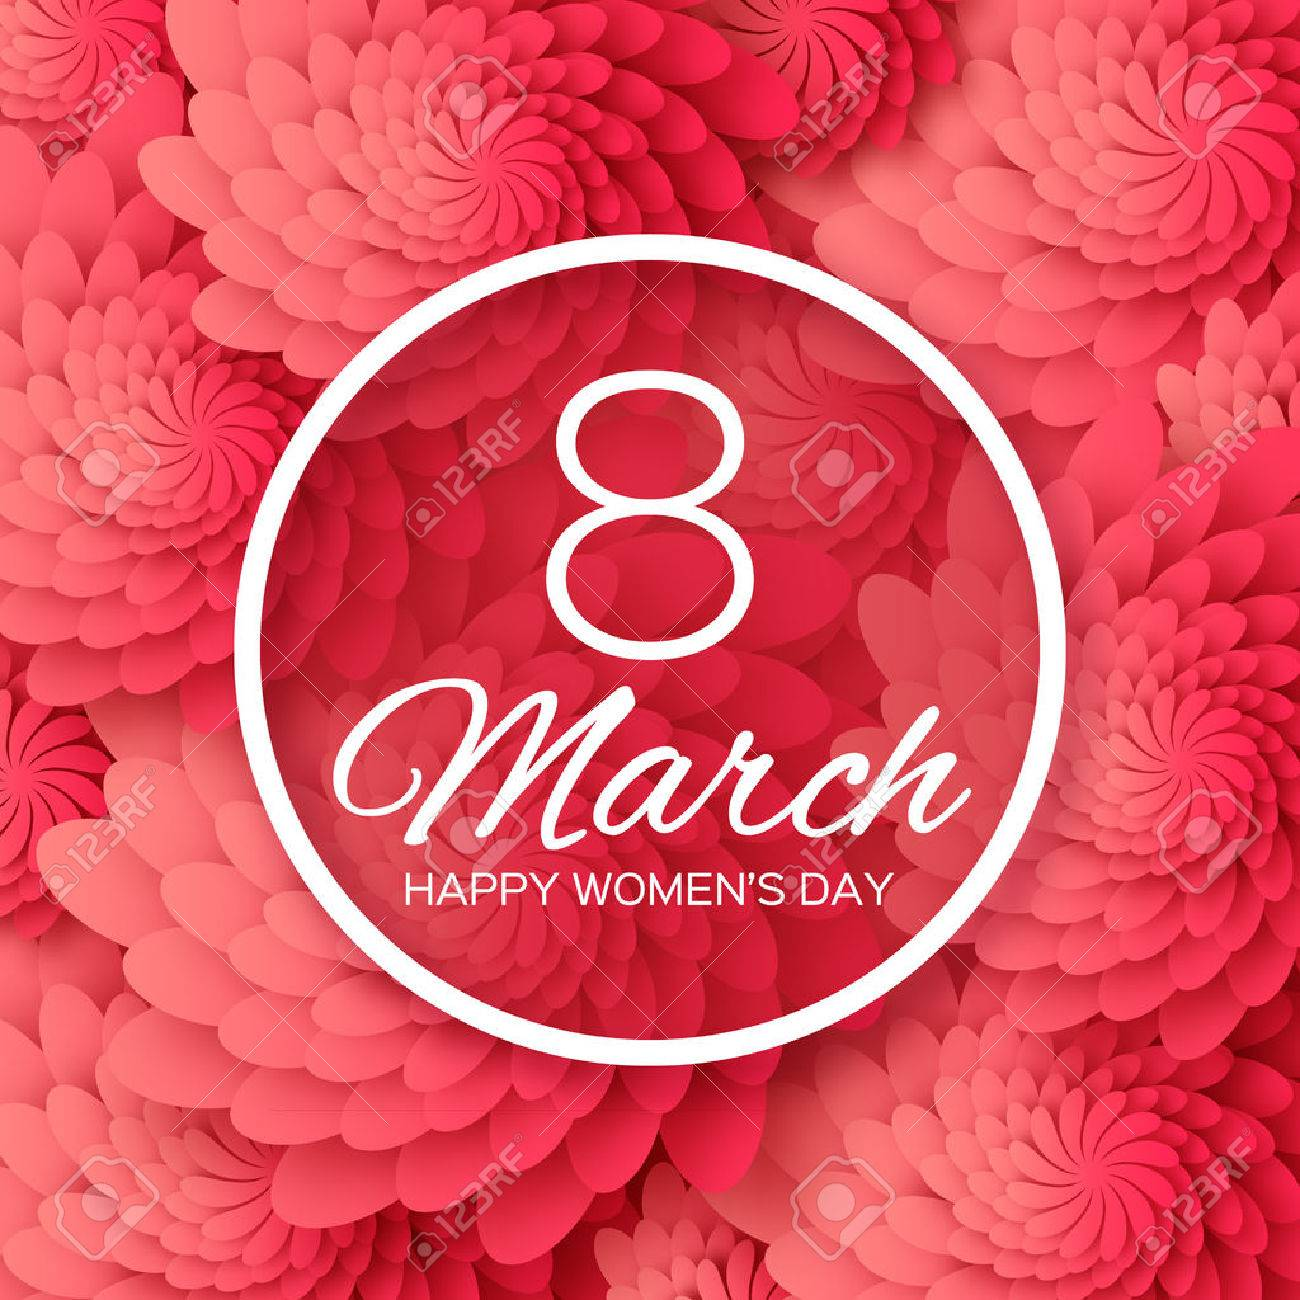 Abstract Red Floral Greeting card - International Happy Women's Day - 8 March holiday background with paper cut Frame Flowers. Happy Mother's Day. Happy GrandMother's Day. Trendy Design Template. Vector illustration. - 52891000